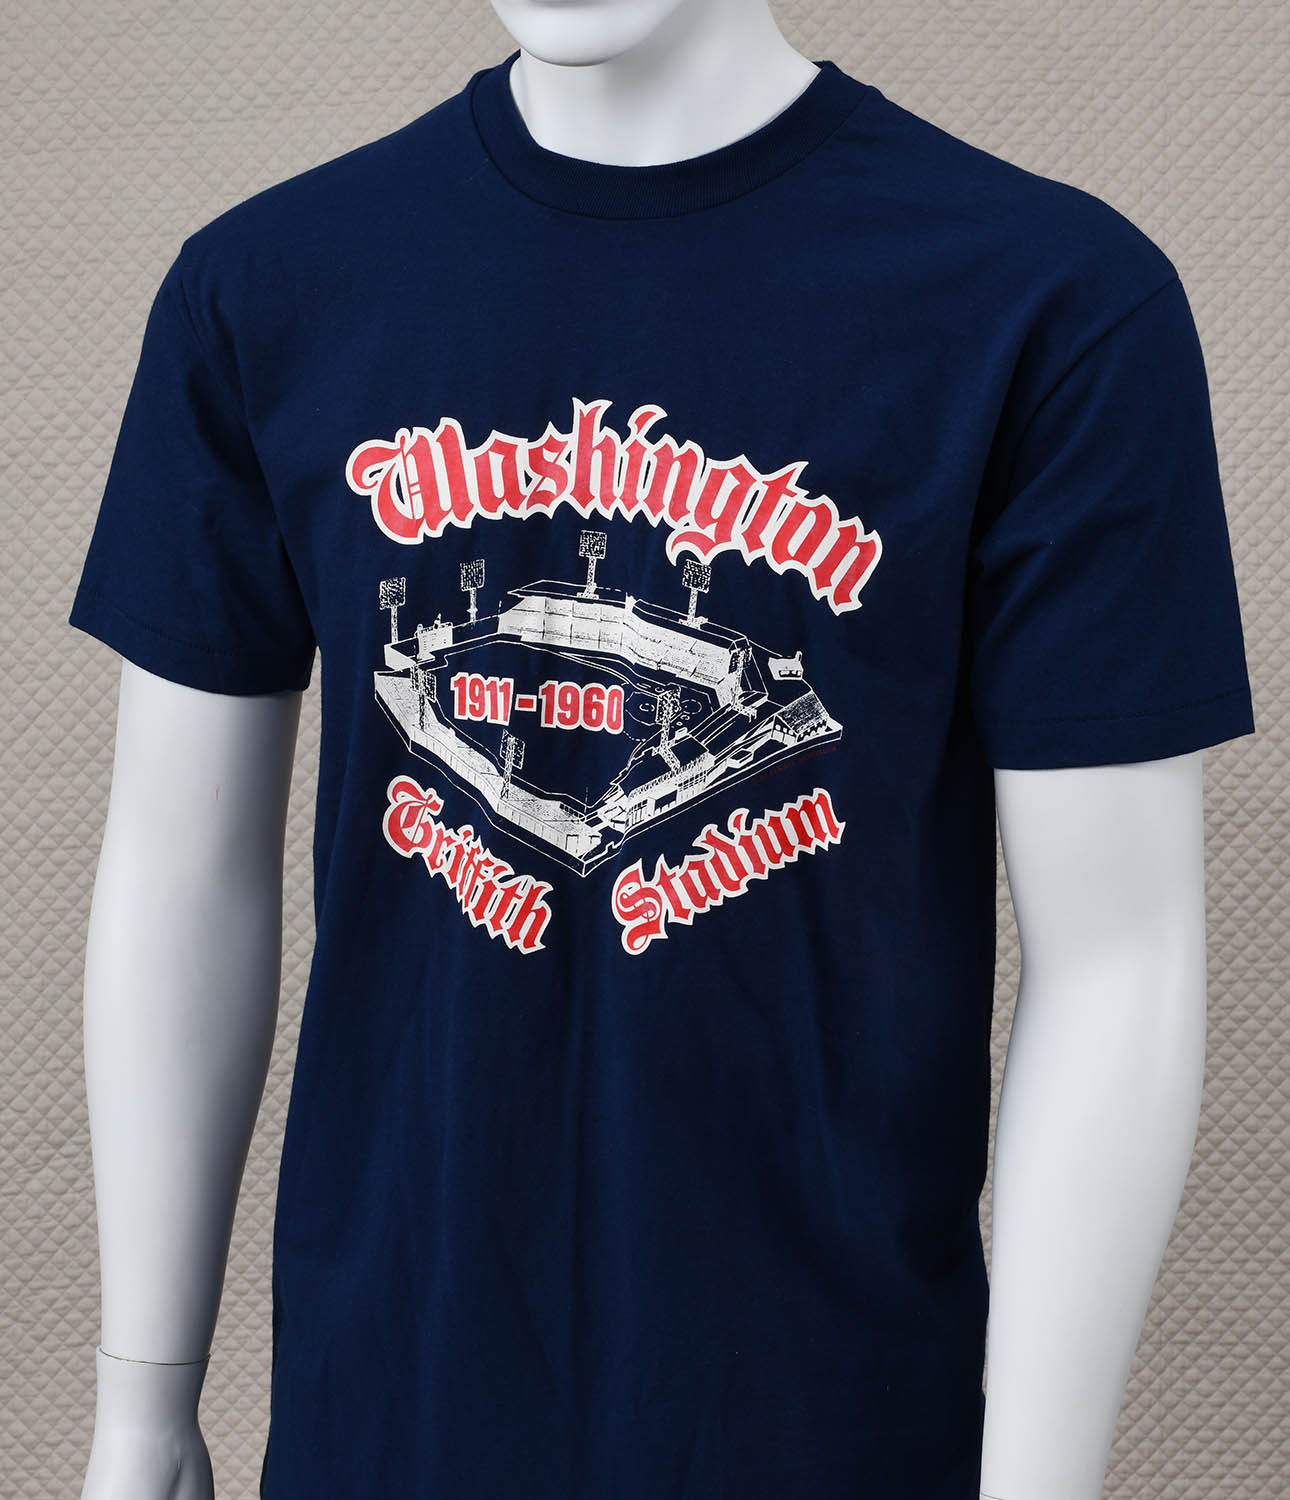 Griffith Stadium Tribute T-Shirt